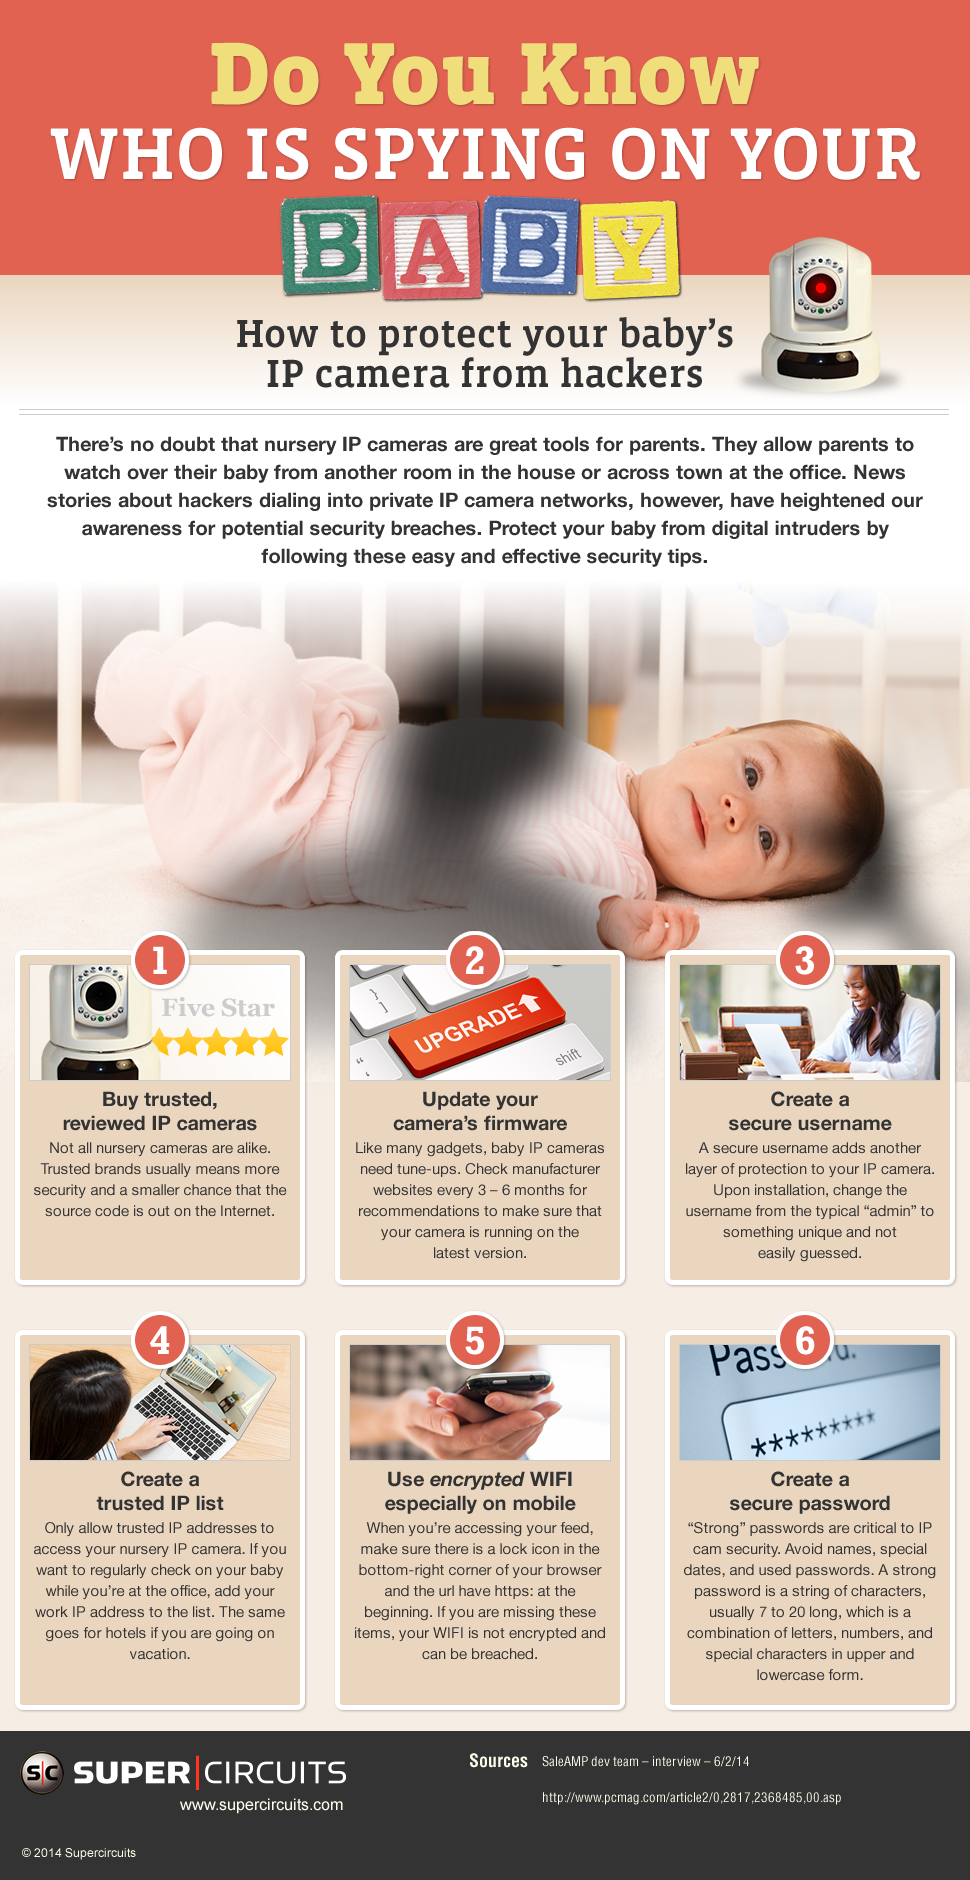 Do You Know Who Is Spying On Your Baby? Infographic